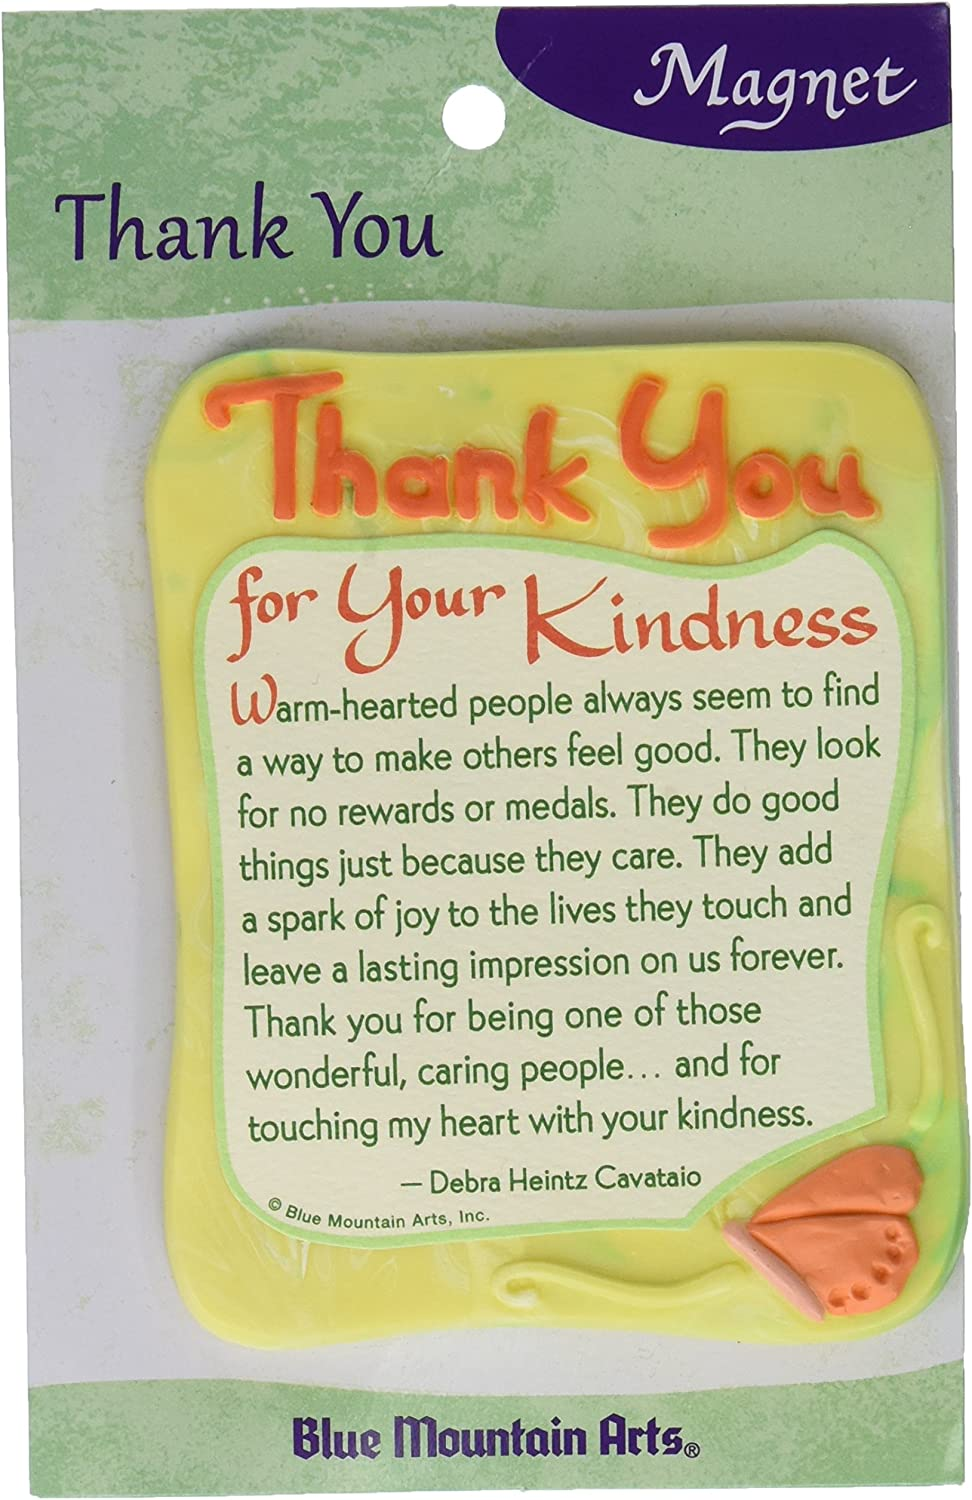 "Sculpted Magnet: Thank You for Your Kindness, 3.0"" x 3.5"""